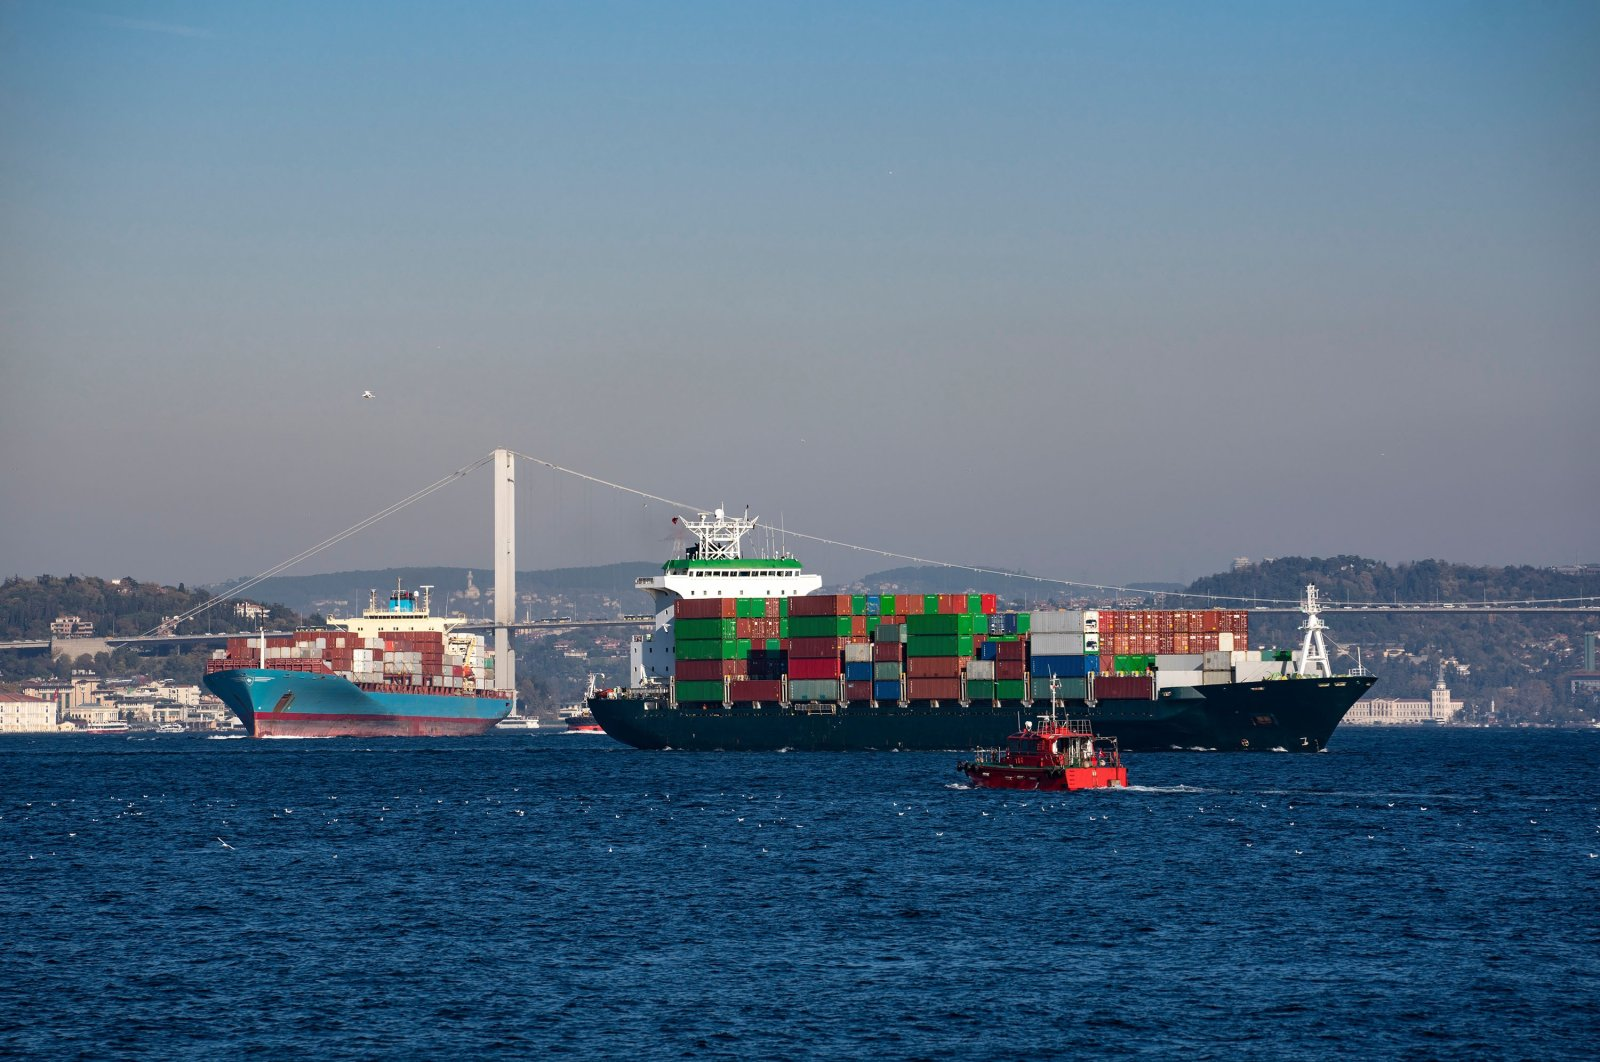 Container ships sail through the Bosporus in Istanbul, Turkey, June 23, 2021. (Shutterstock Photo)